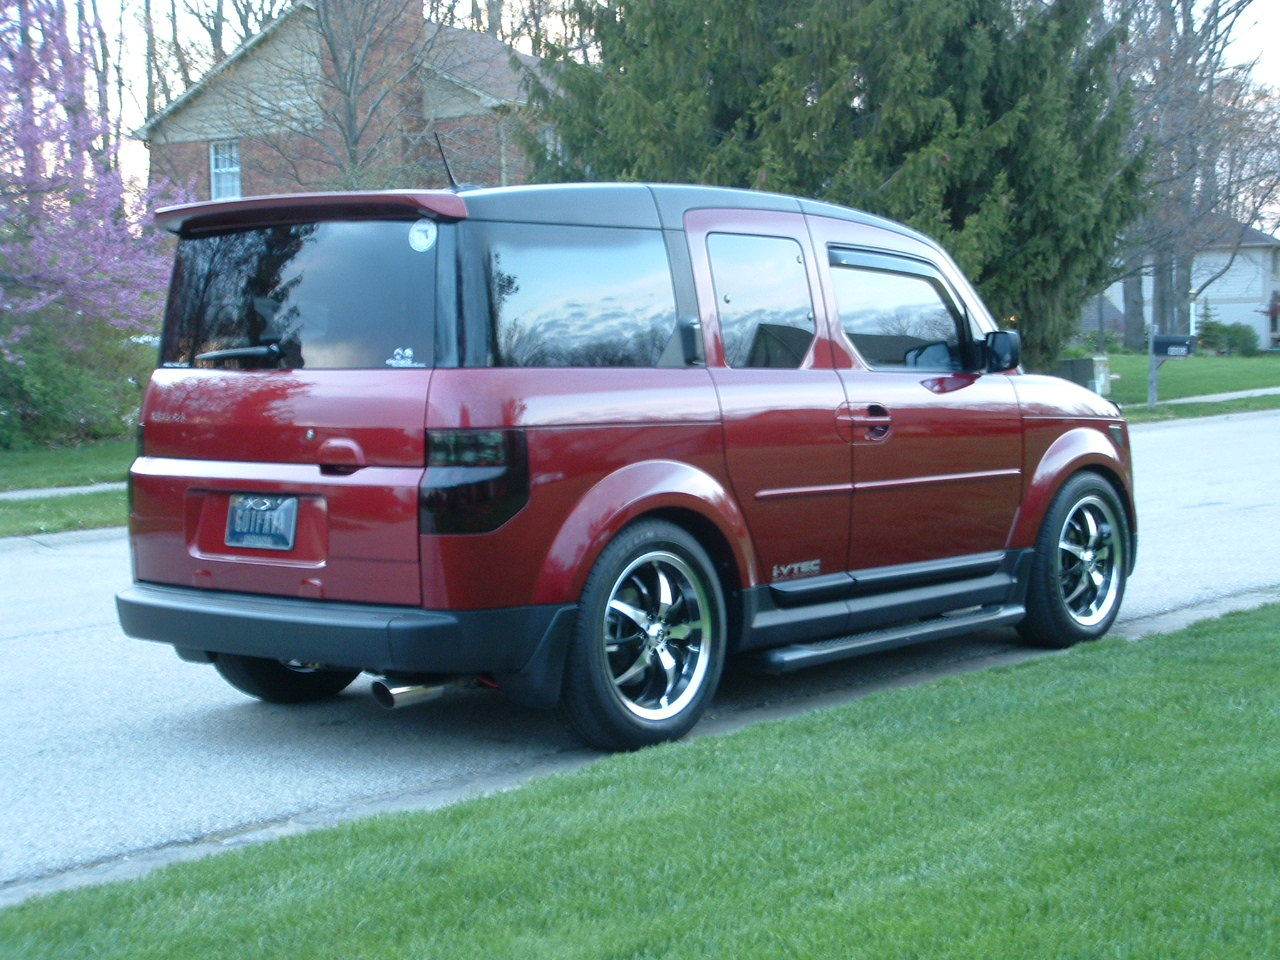 chozn4service 39 s 2006 honda element page 2 in indy in. Black Bedroom Furniture Sets. Home Design Ideas